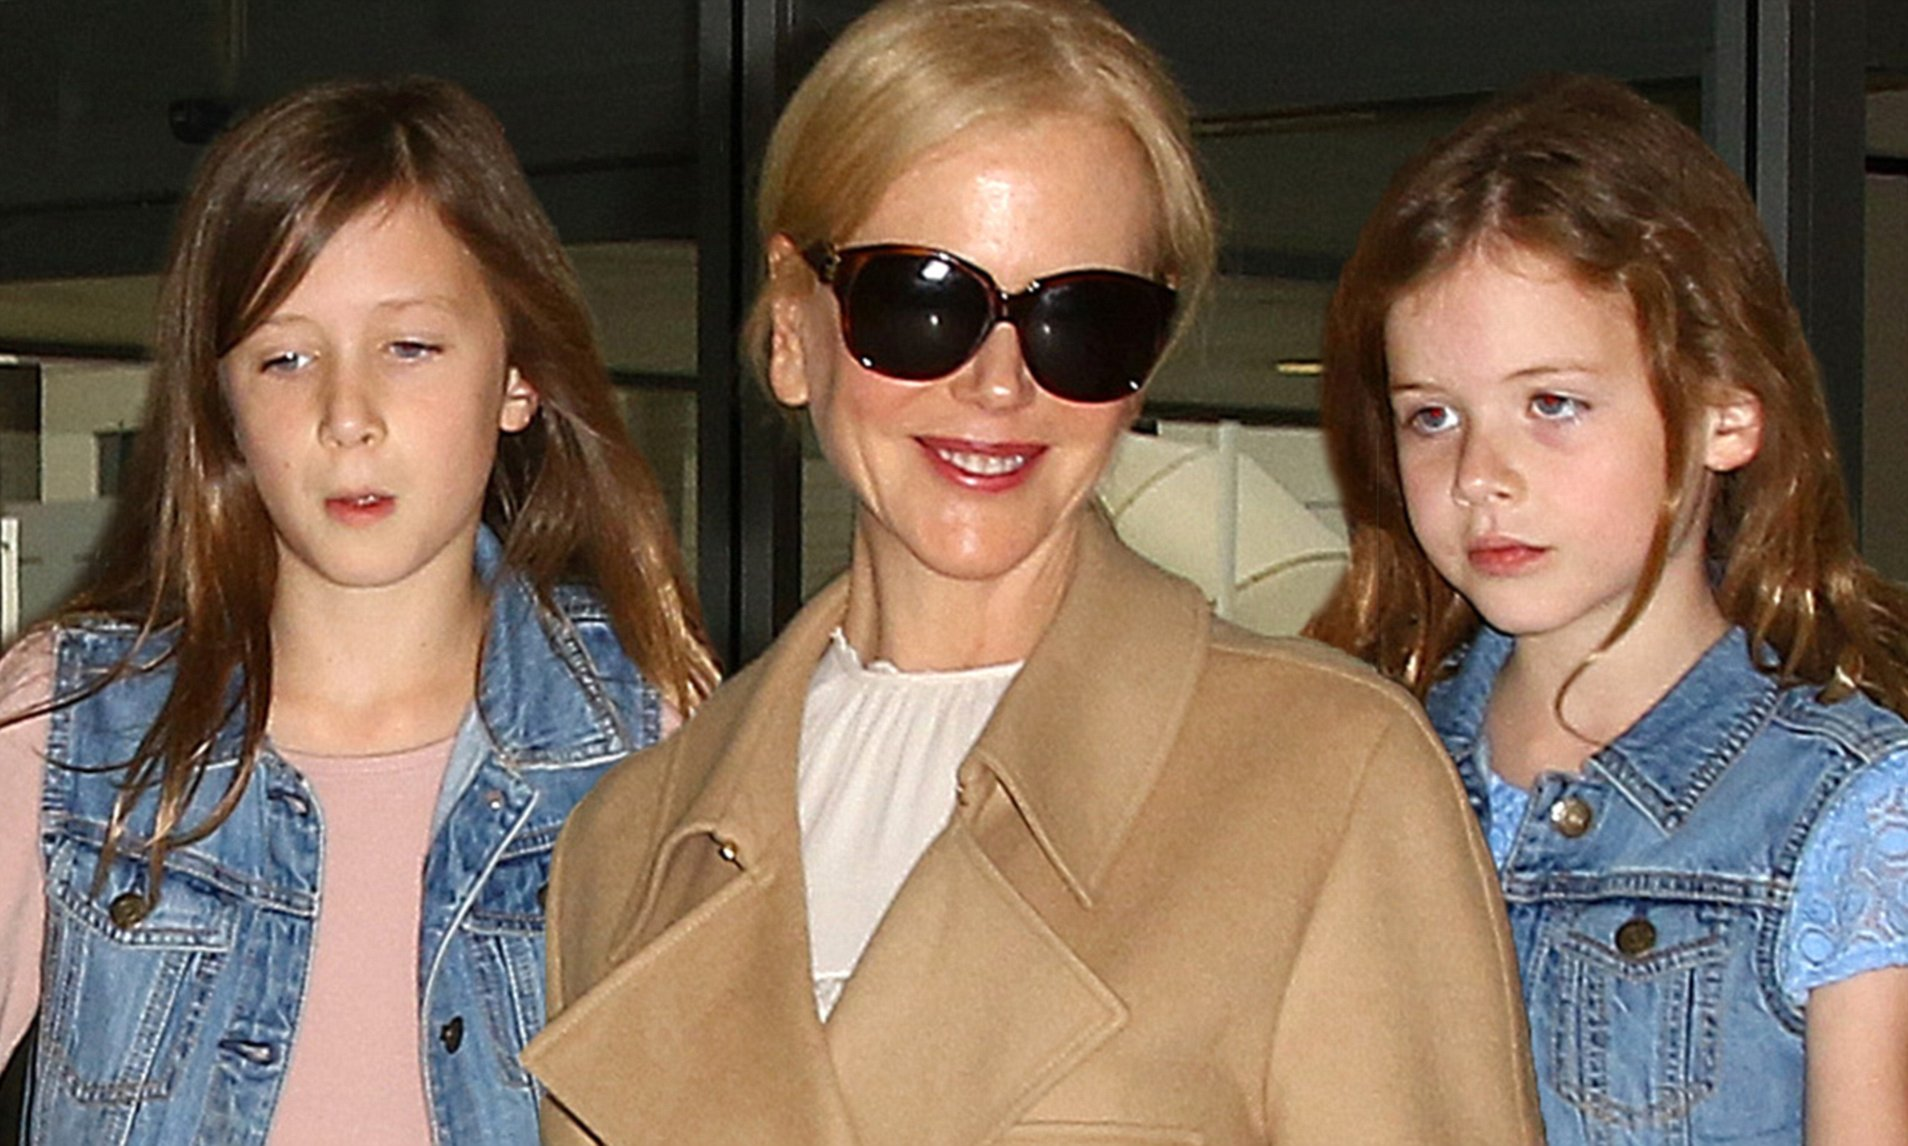 Actress Nicole Kidman's daughter wants to be a director: Here her reactions to this.